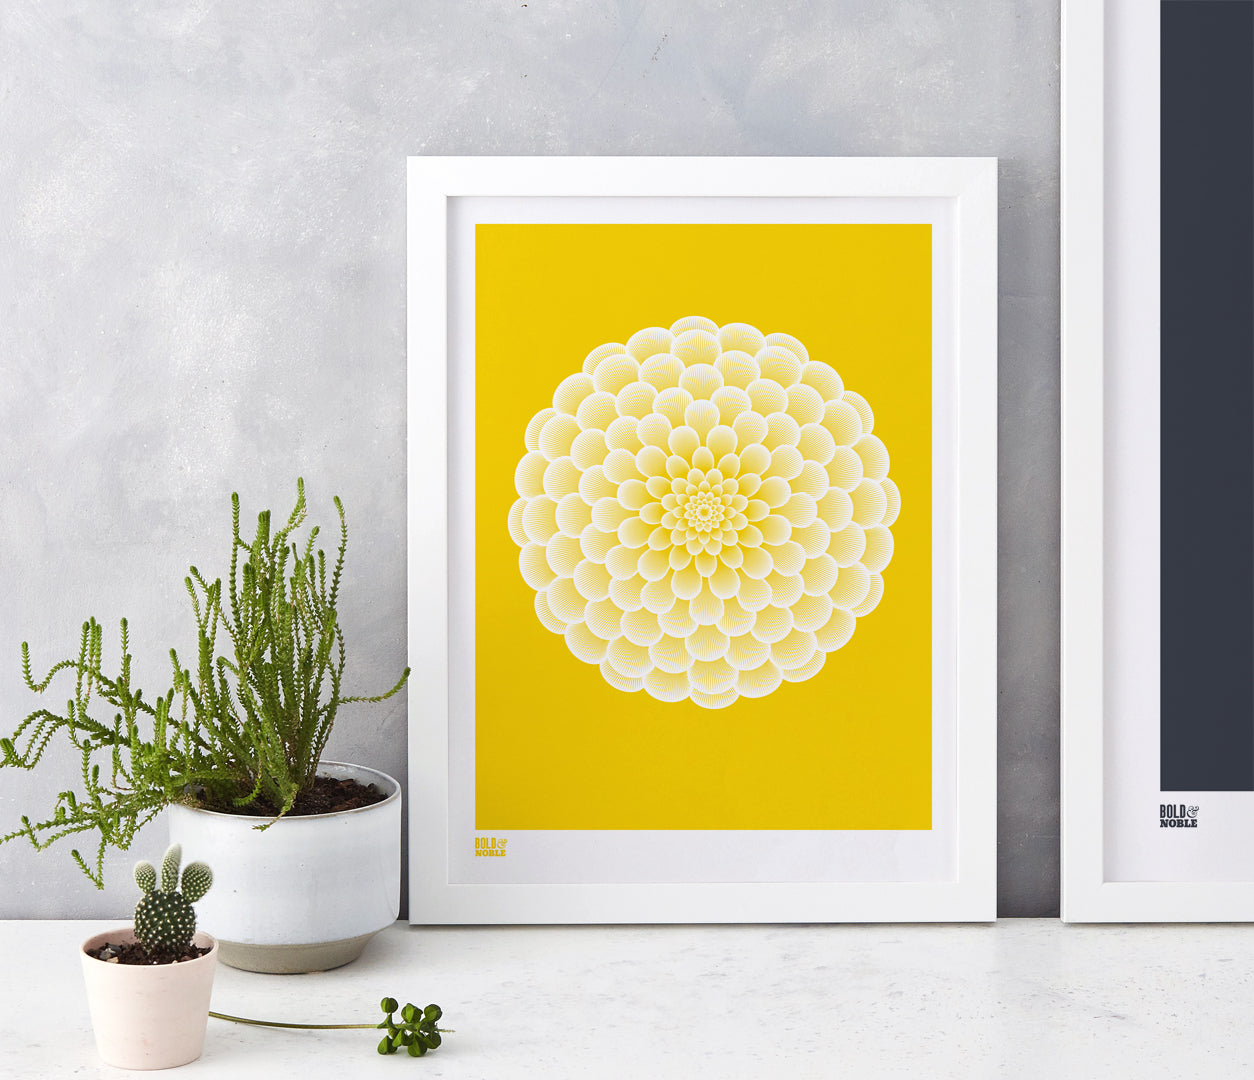 Dahlia Flower Art Print Design, fits into standard size frames, or can be bespoke framed